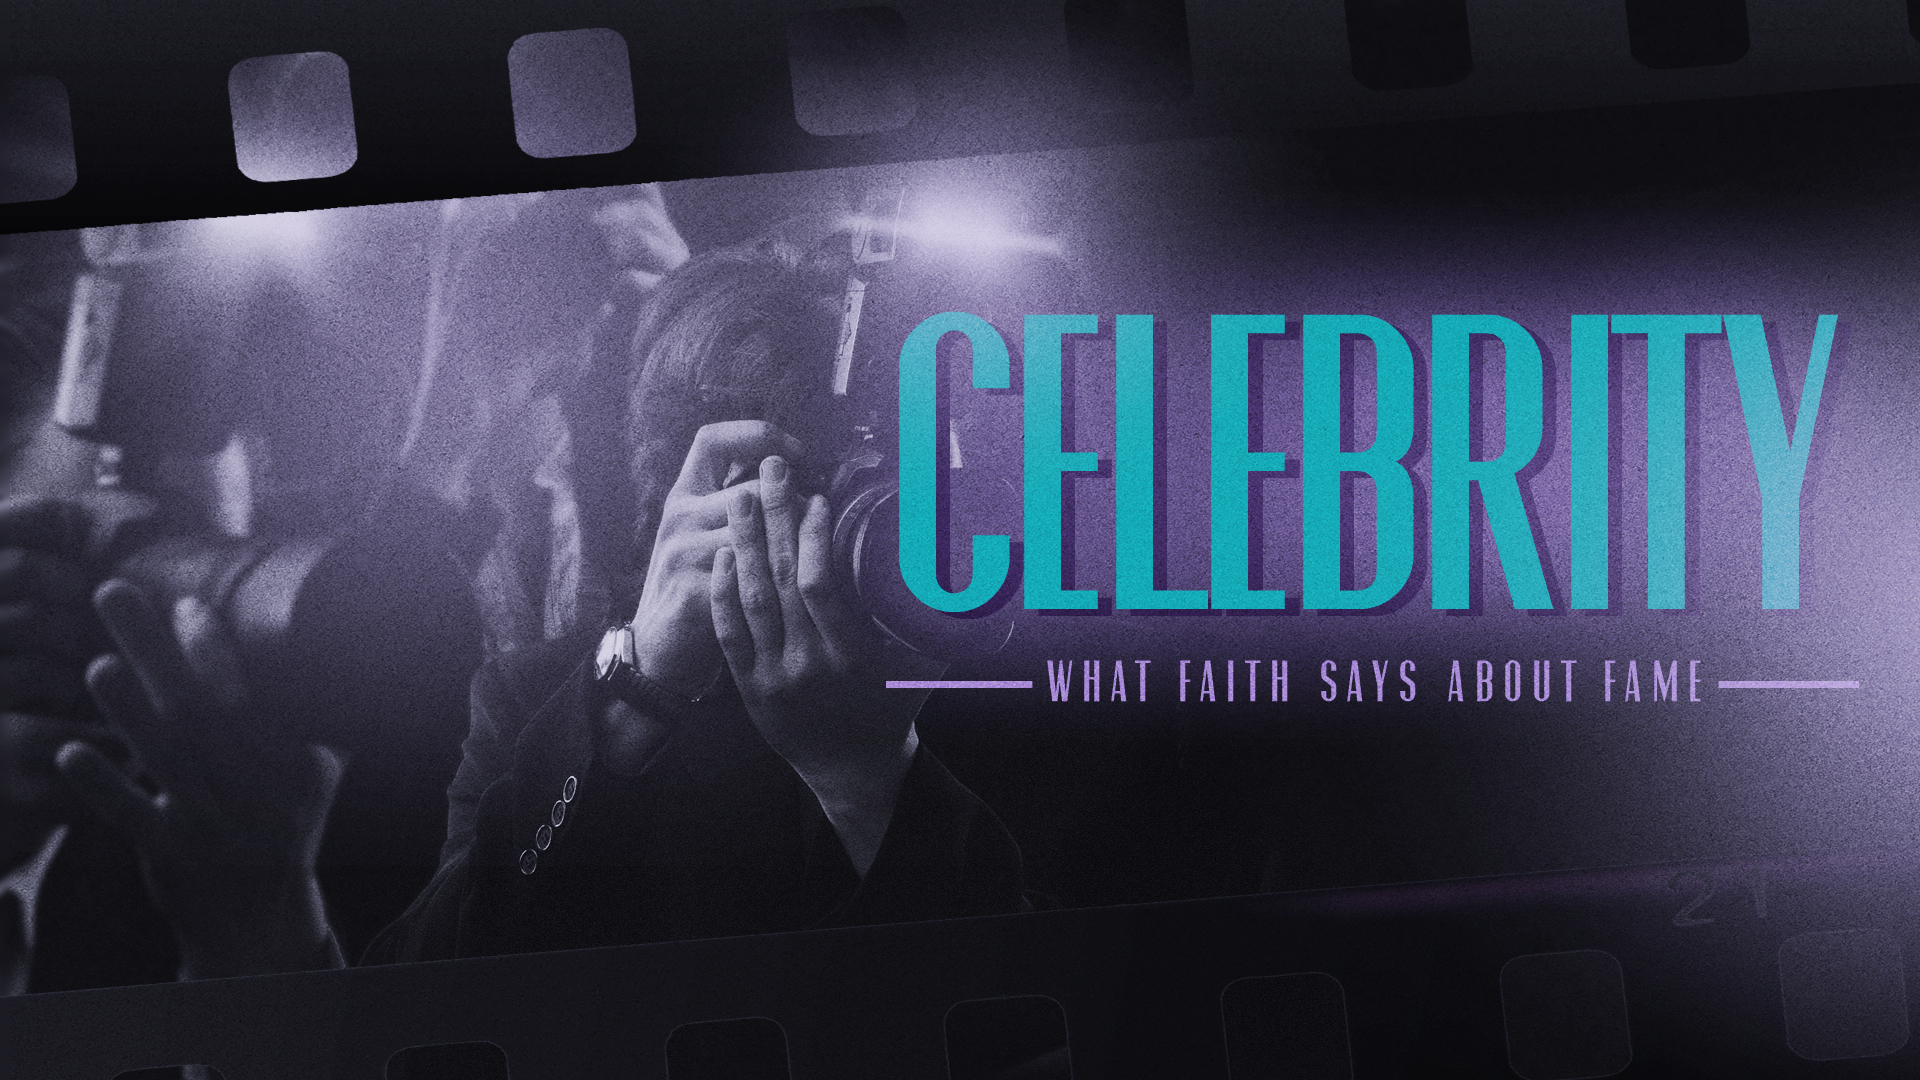 Celebrity: What Faith Says About Fame